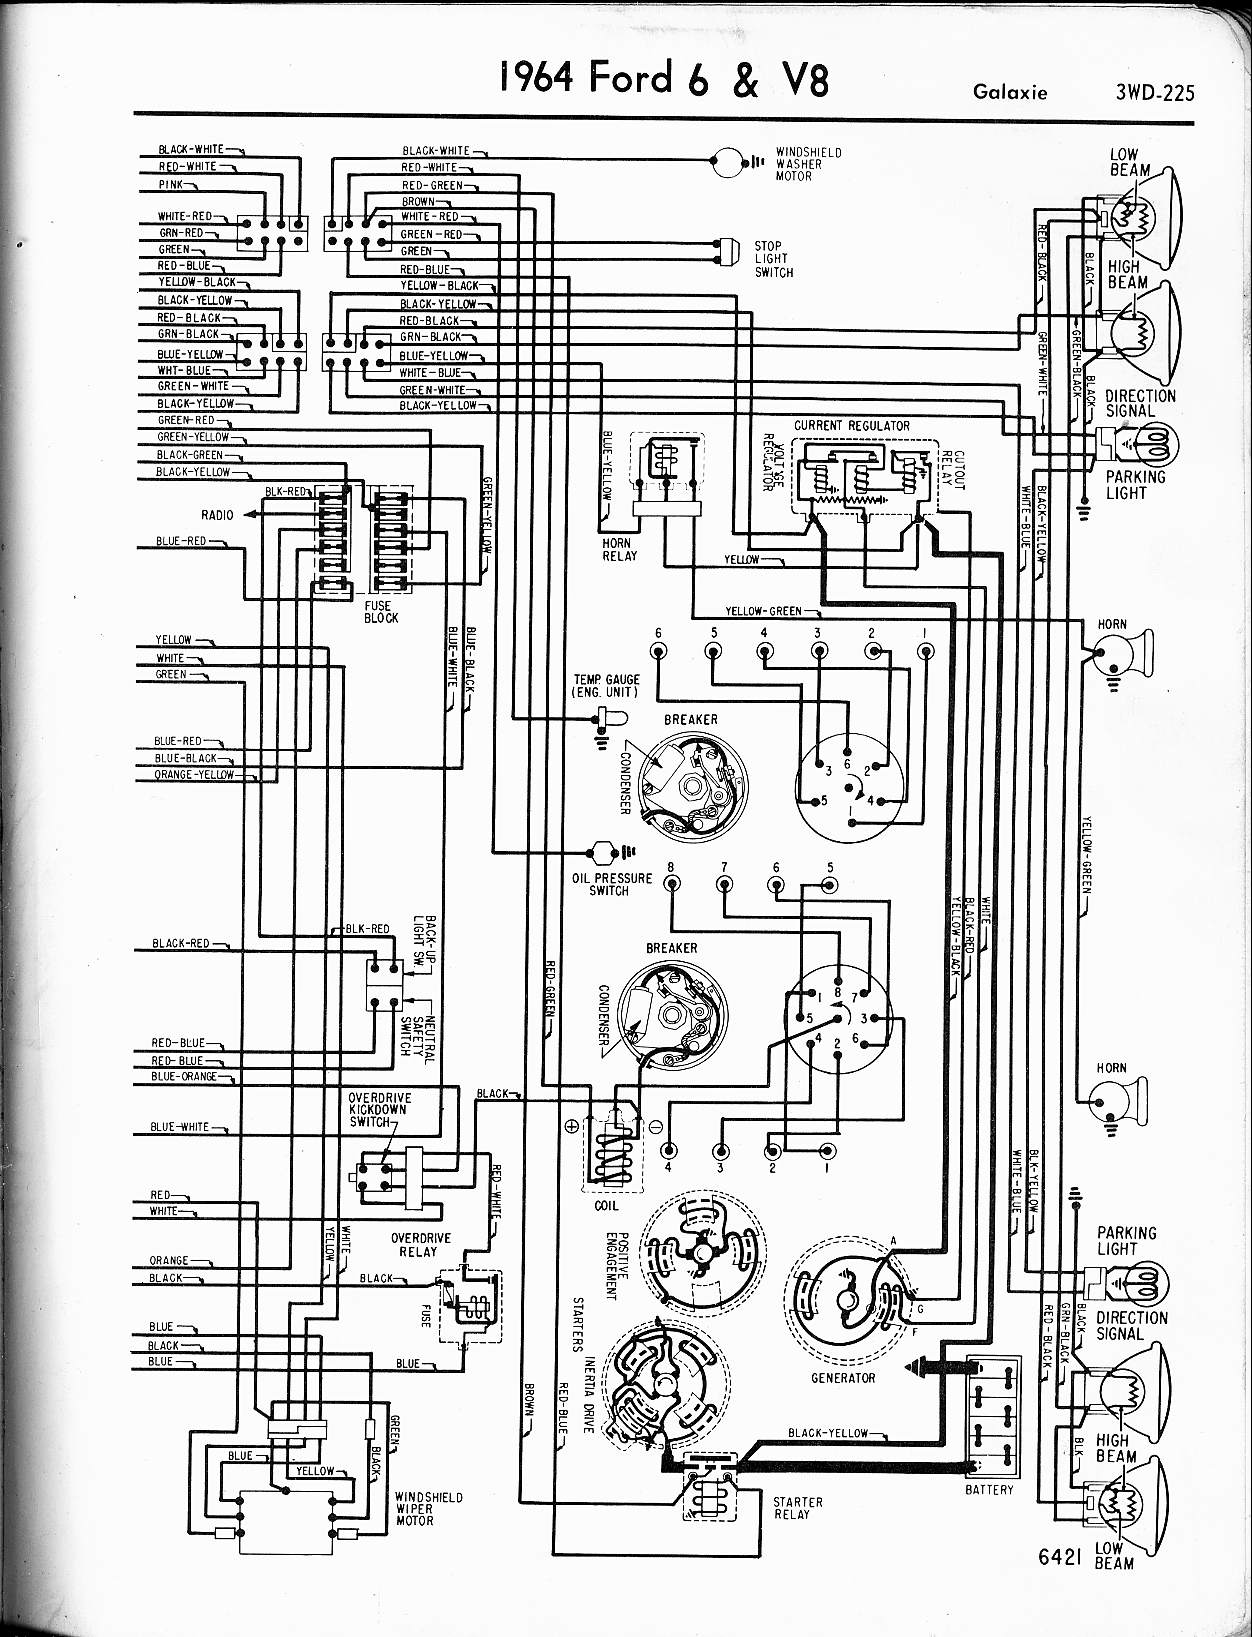 MWire5765 225 1964 wiring woes ford muscle forums ford muscle cars tech forum 1964 falcon wiring diagram at soozxer.org